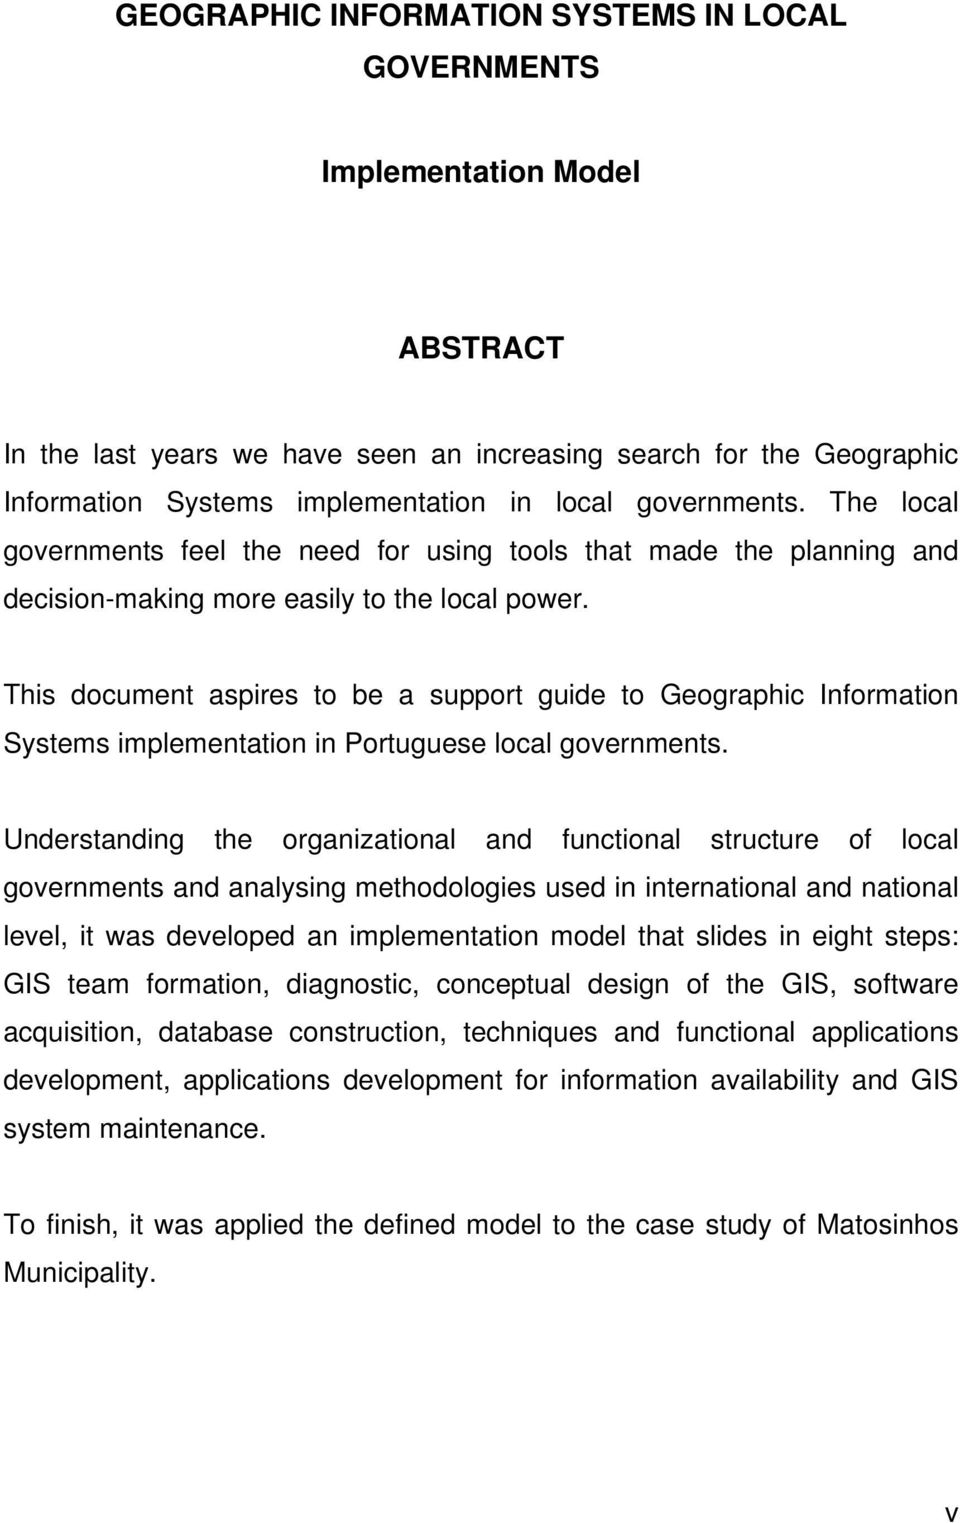 This document aspires to be a support guide to Geographic Information Systems implementation in Portuguese local governments.